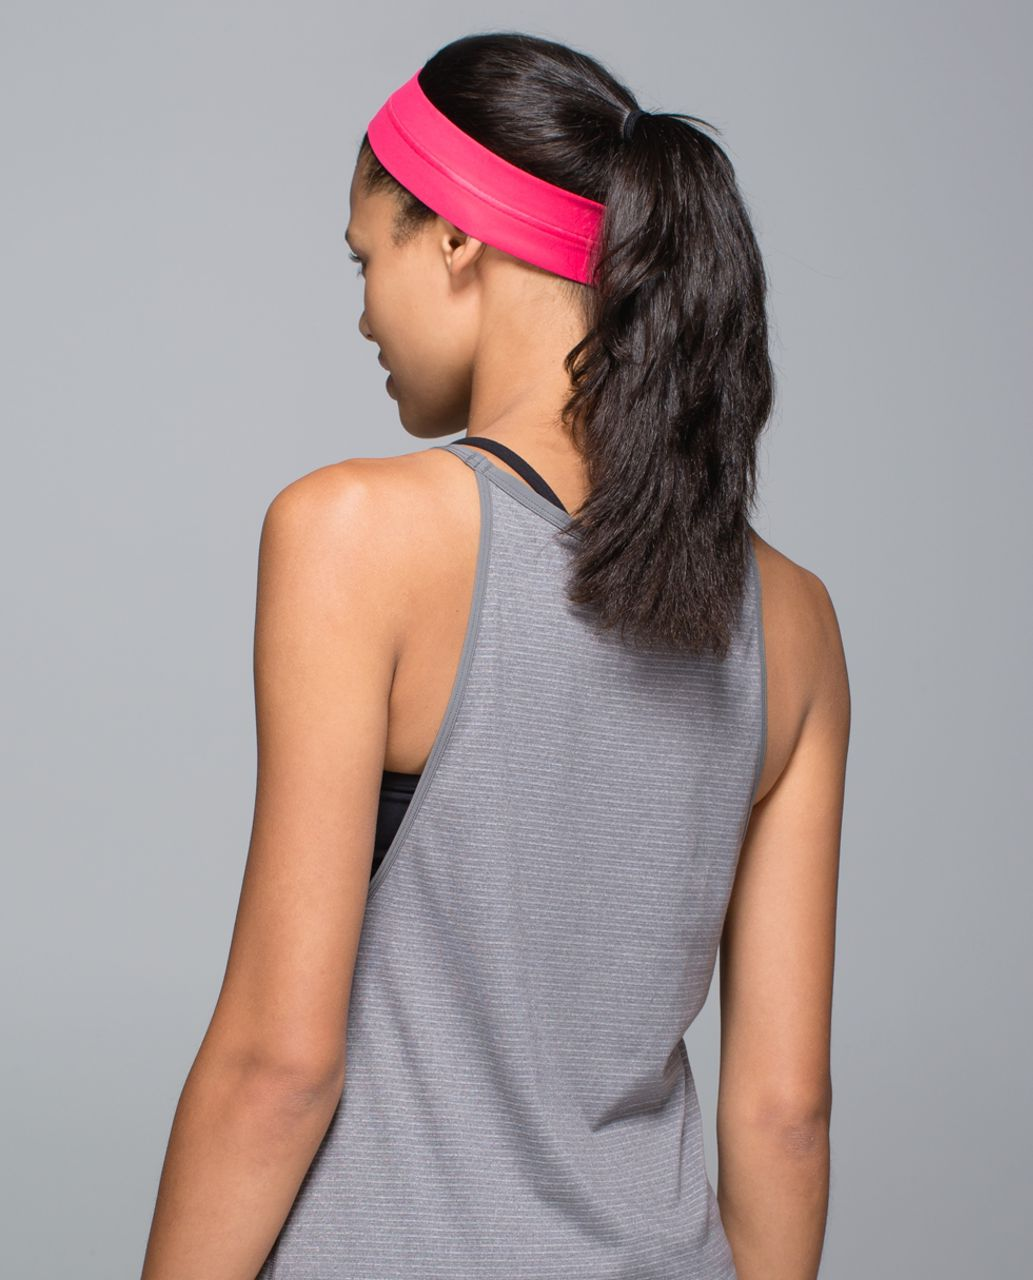 Lululemon Fly Away Tamer Headband - Boom Juice